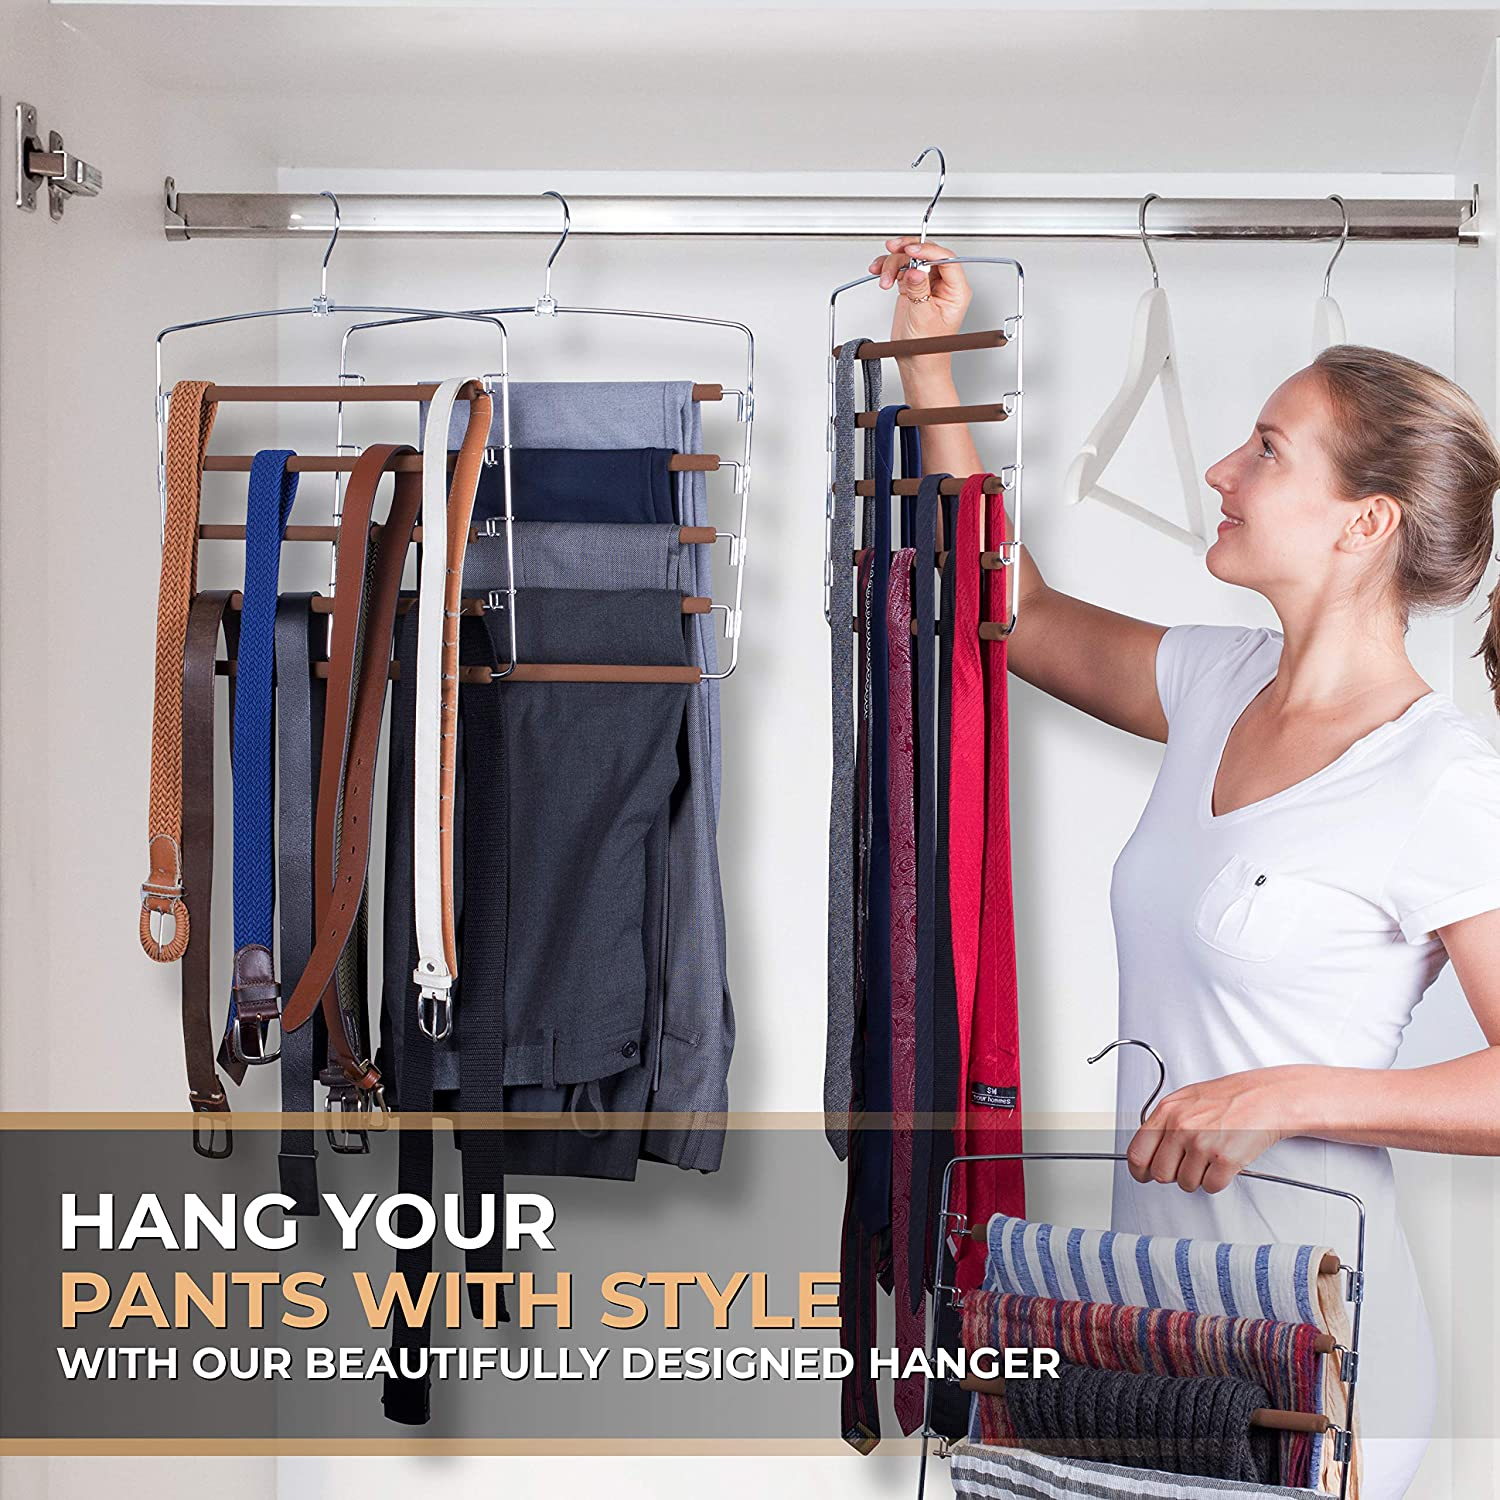 Space-Saving Multi-Functional Hangers for Trousers Dress and Slack Pants Hanger 5-Tier Closet Organizing Trouser Rack with Padded Swing Arm 4 Pack Jeans Organizer Mens and Womens Clothing